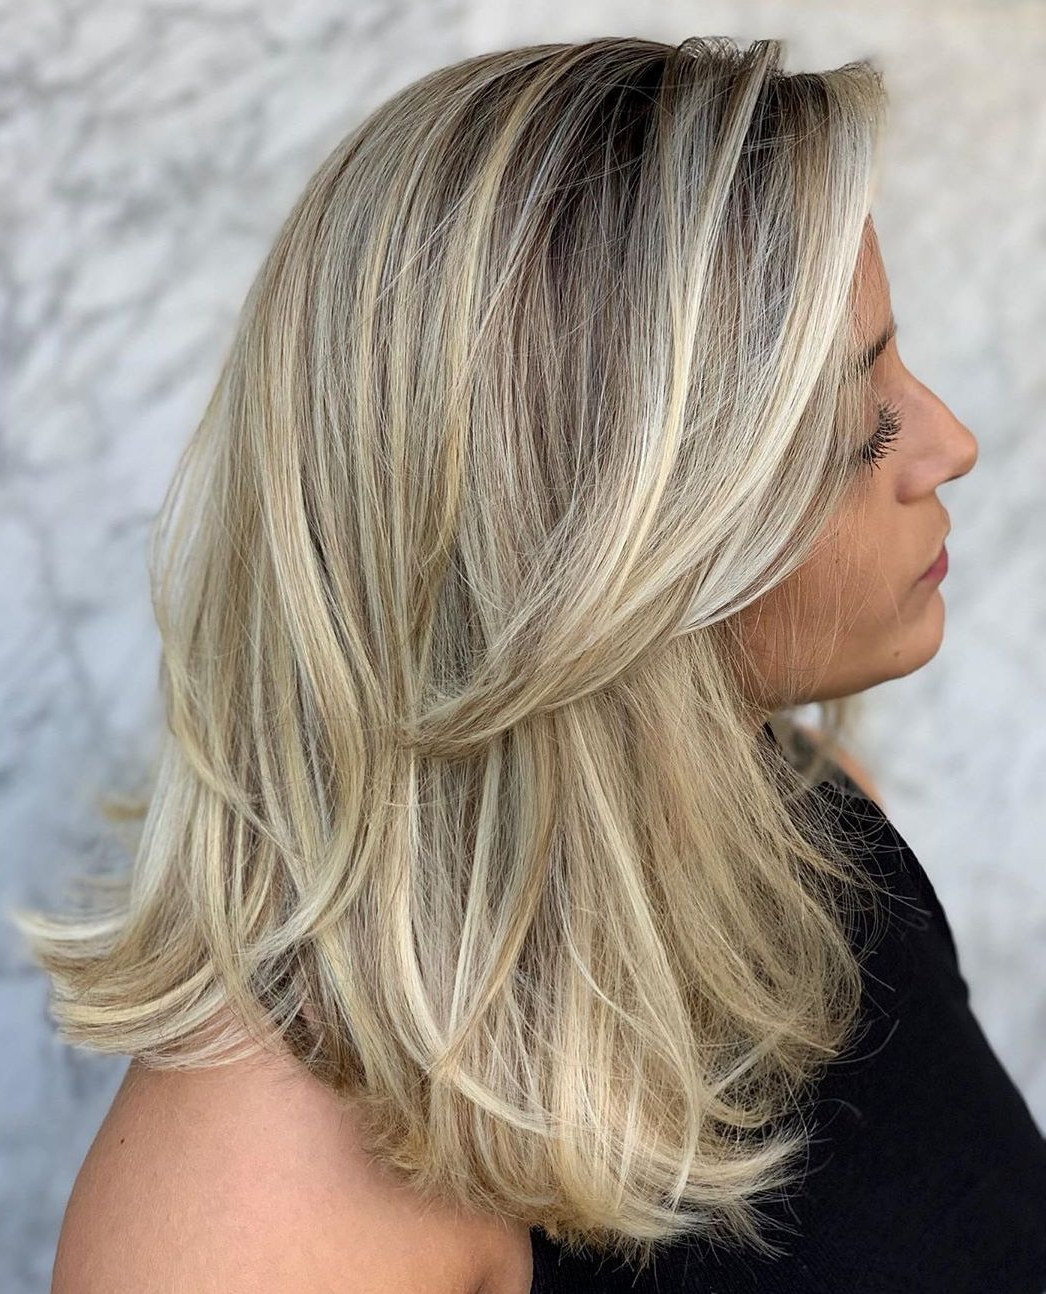 40 Medium Length Hairstyles For Thick Hair ⋆ Palau Oceans Within Trendy Sleek Mid Length Haircuts With Shaggy Ends (View 2 of 20)